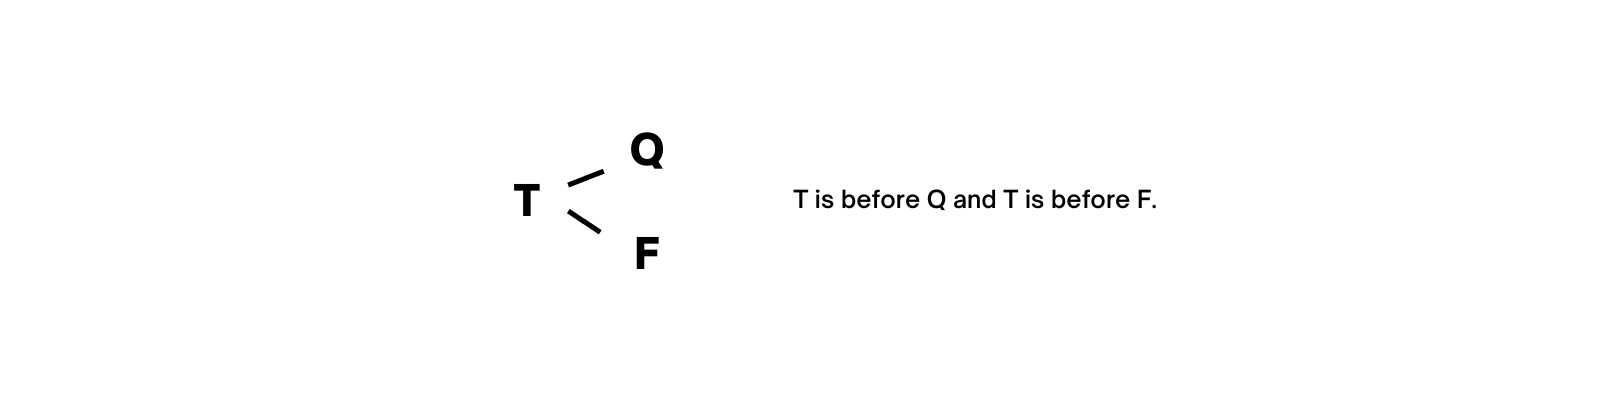 T is before Q and T is before F.